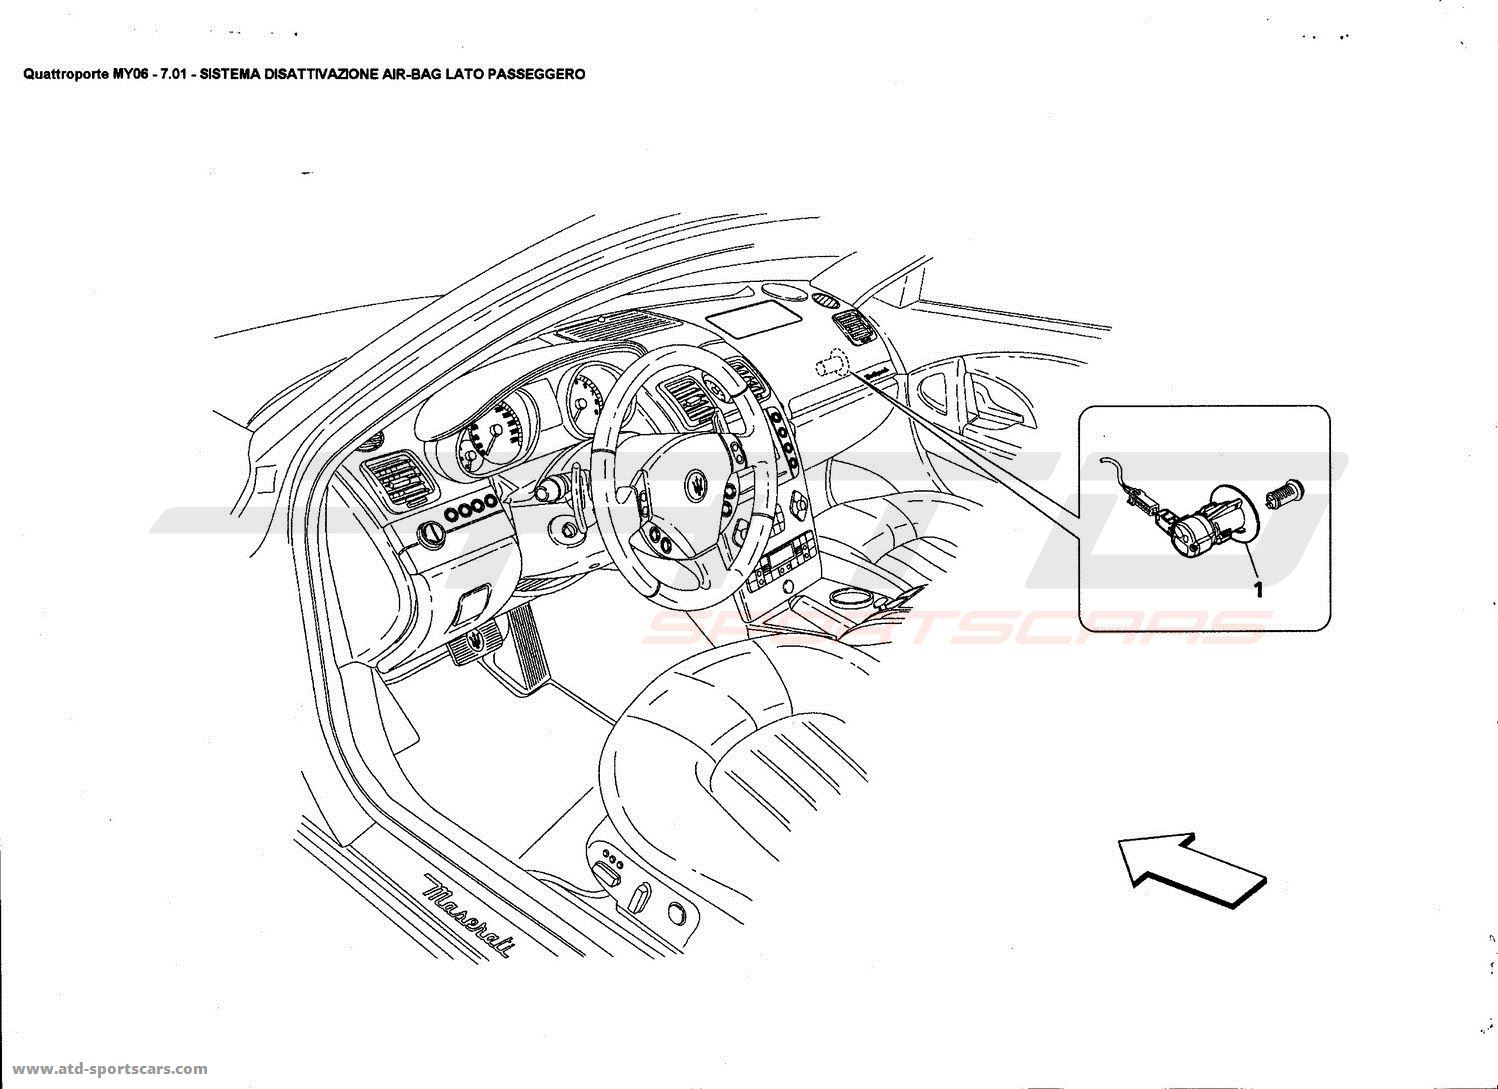 service manual  1989 maserati karif side airbag removal